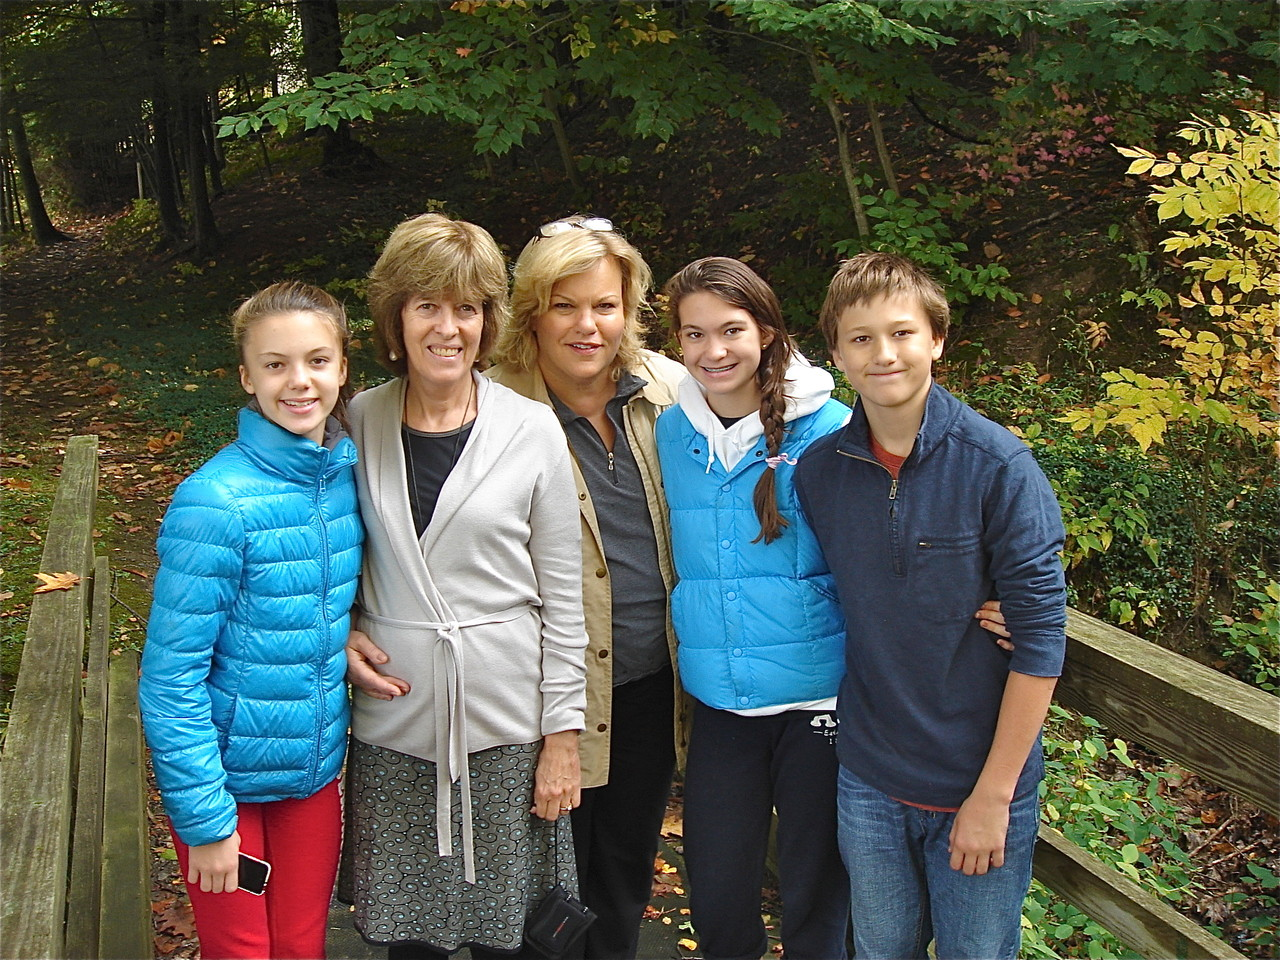 Kate, Nancy Hynes, Celeste, Ellie & Jack Oct 6, 2012